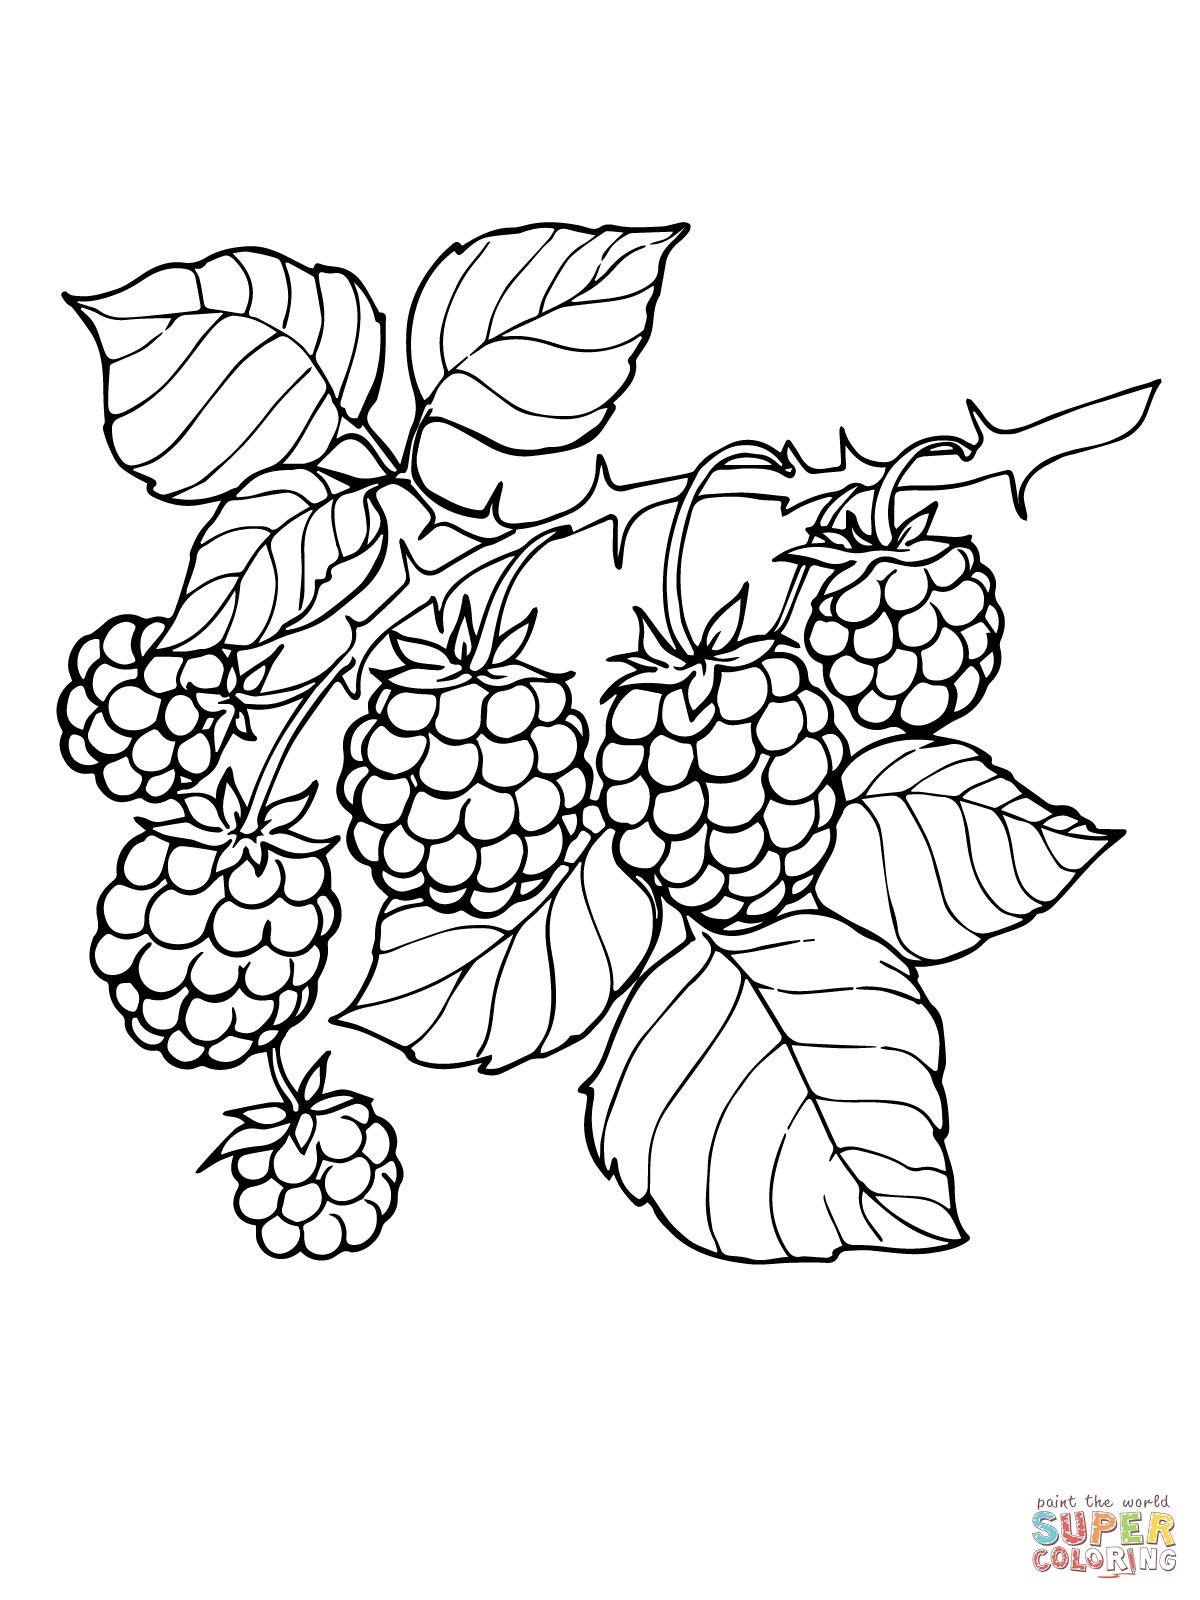 Blackberry Branch   Super Coloring   art patterns   Embroidery